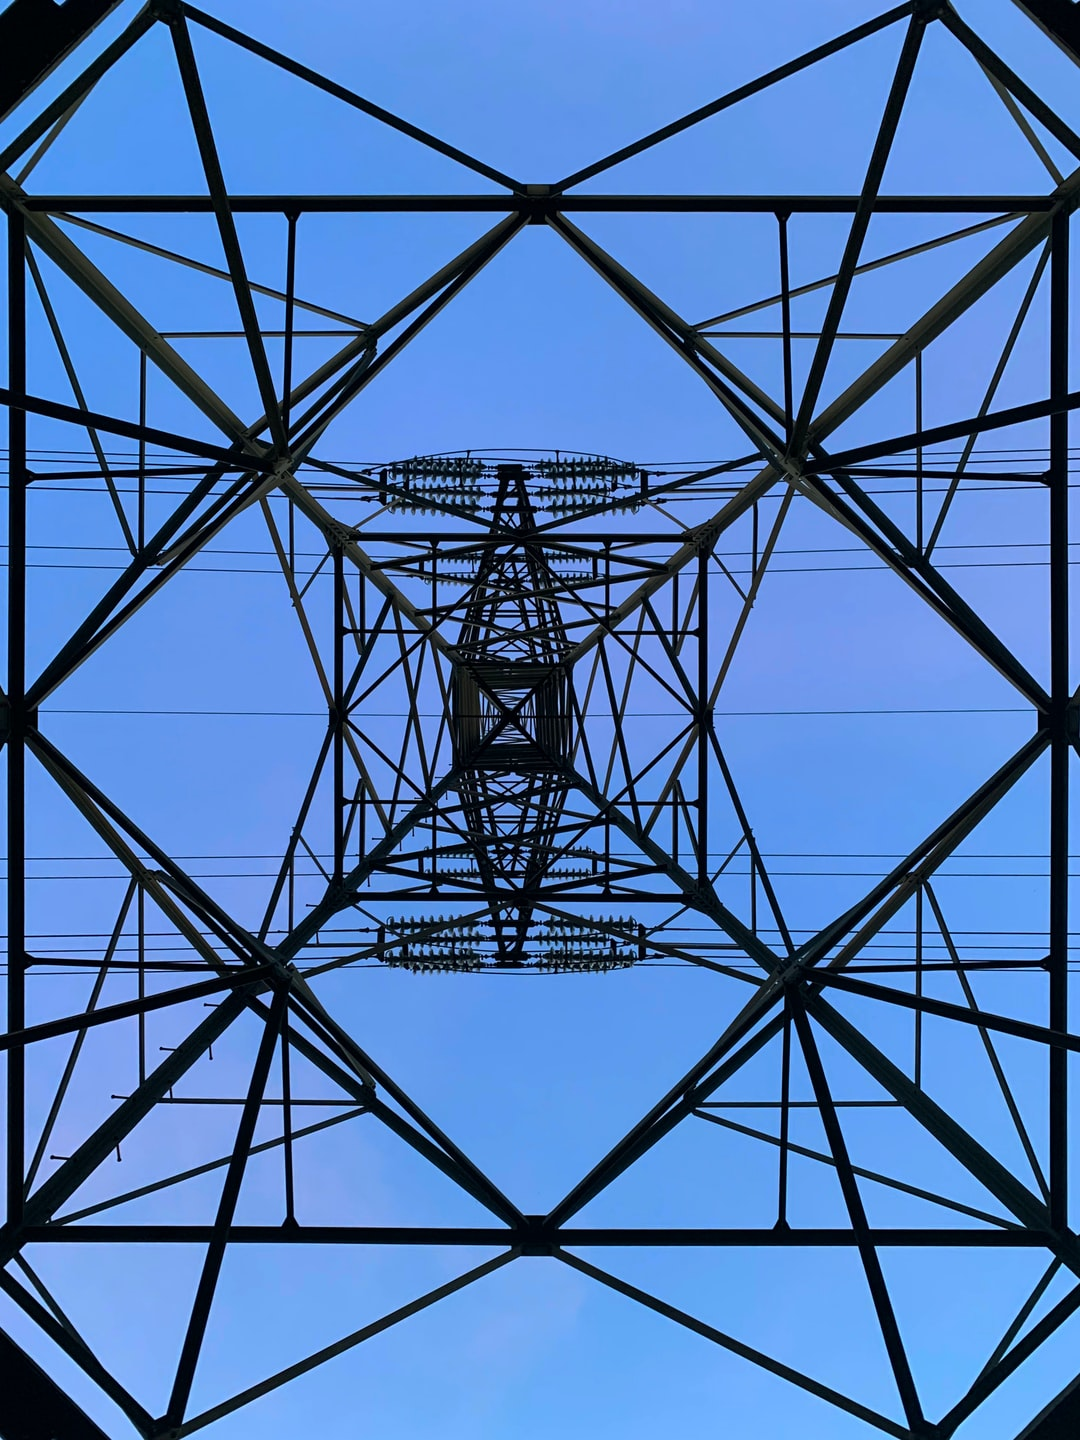 Wire tower for electricity. Architecture from below. High voltage.